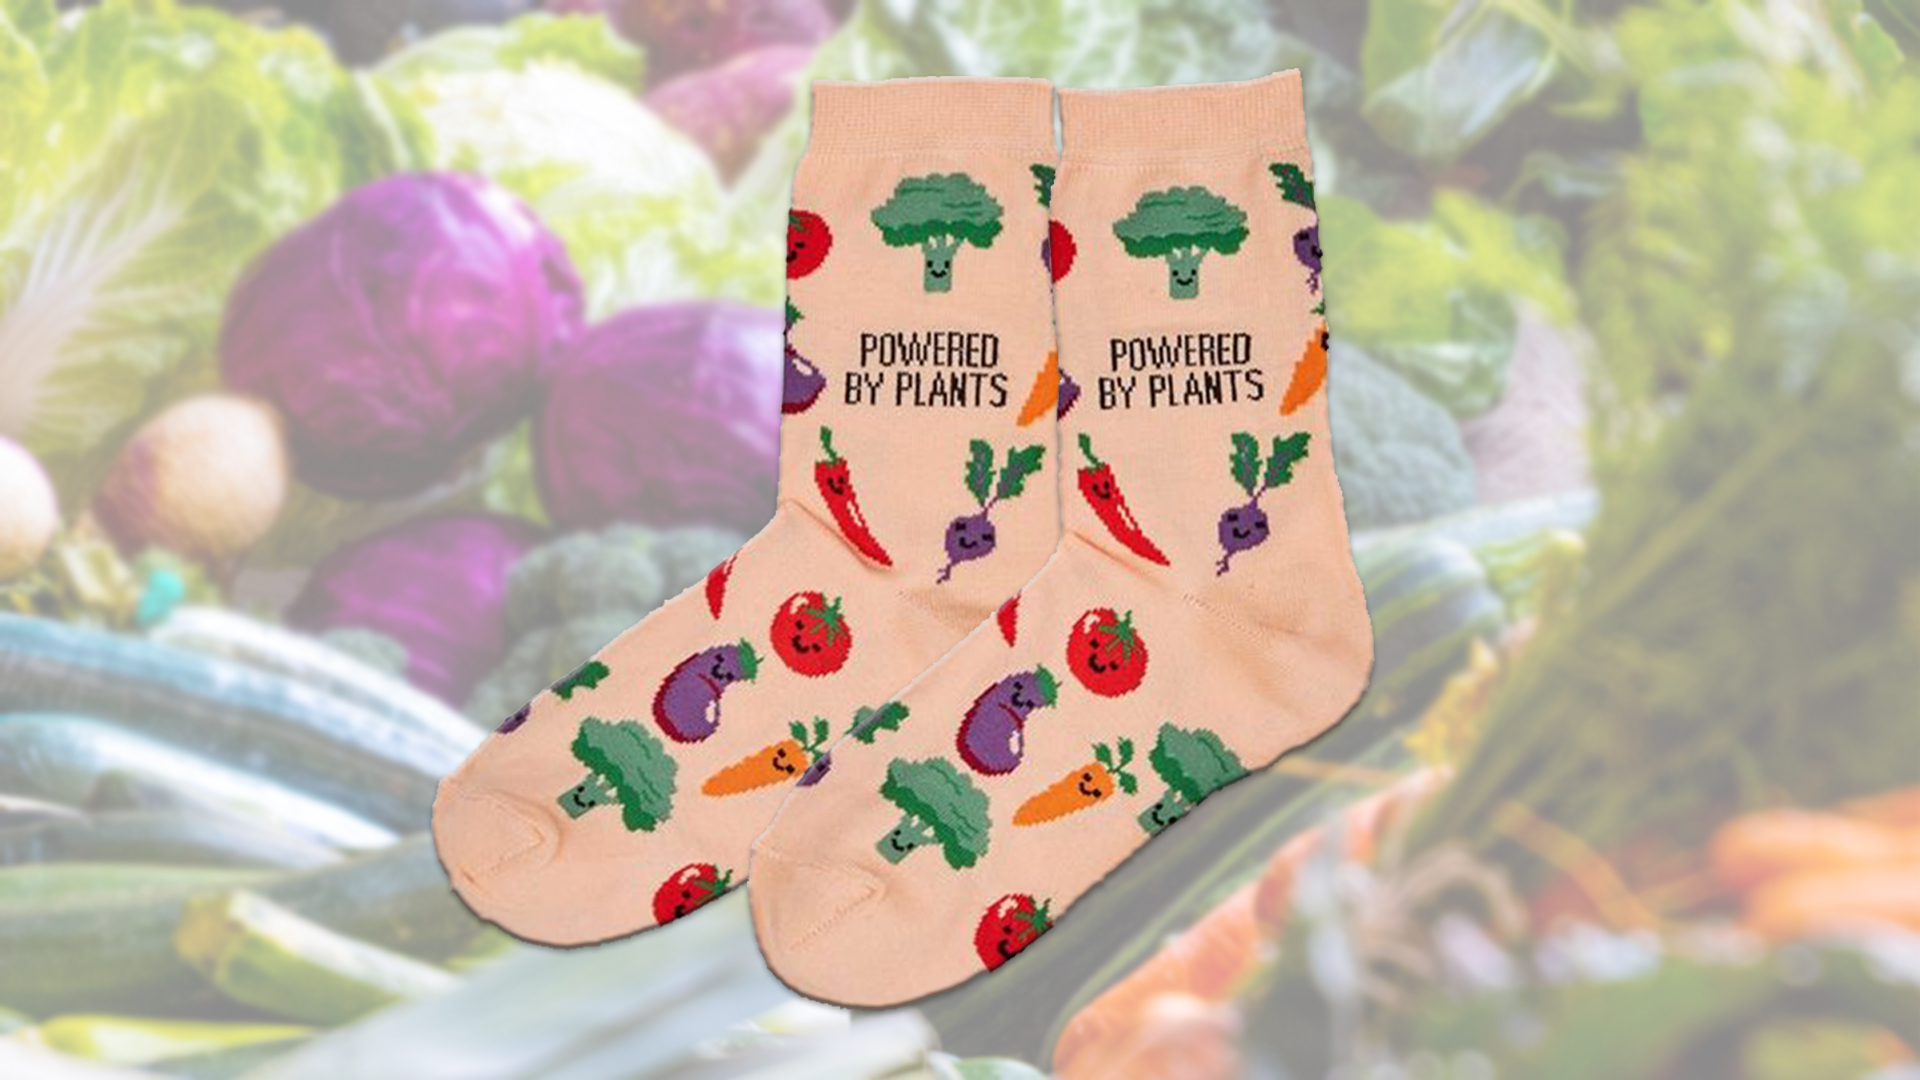 New Look Offers Socks for Vegan Feet